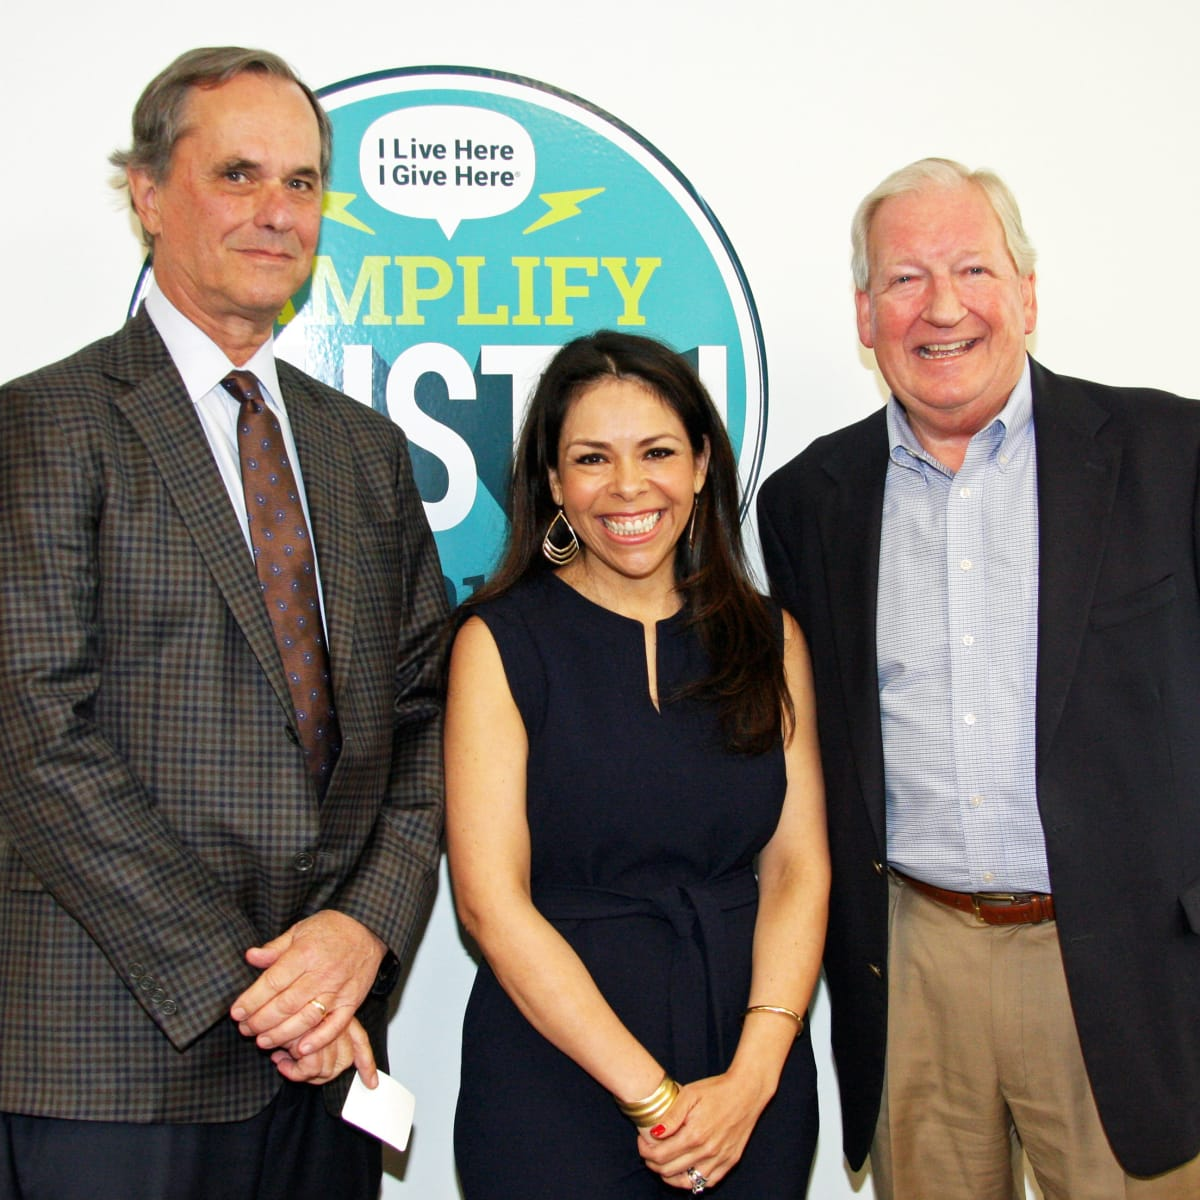 Peter Pincoffs​ (​St. David's Foundation​,​ Board Chair​)​, Celeste Flores​ (​Executive Director​,​ I Live Here I Give Here​)​, Earl Maxwell​ (​CEO ​at ​​St. David's Foundation​)​ at St. David's Foundation